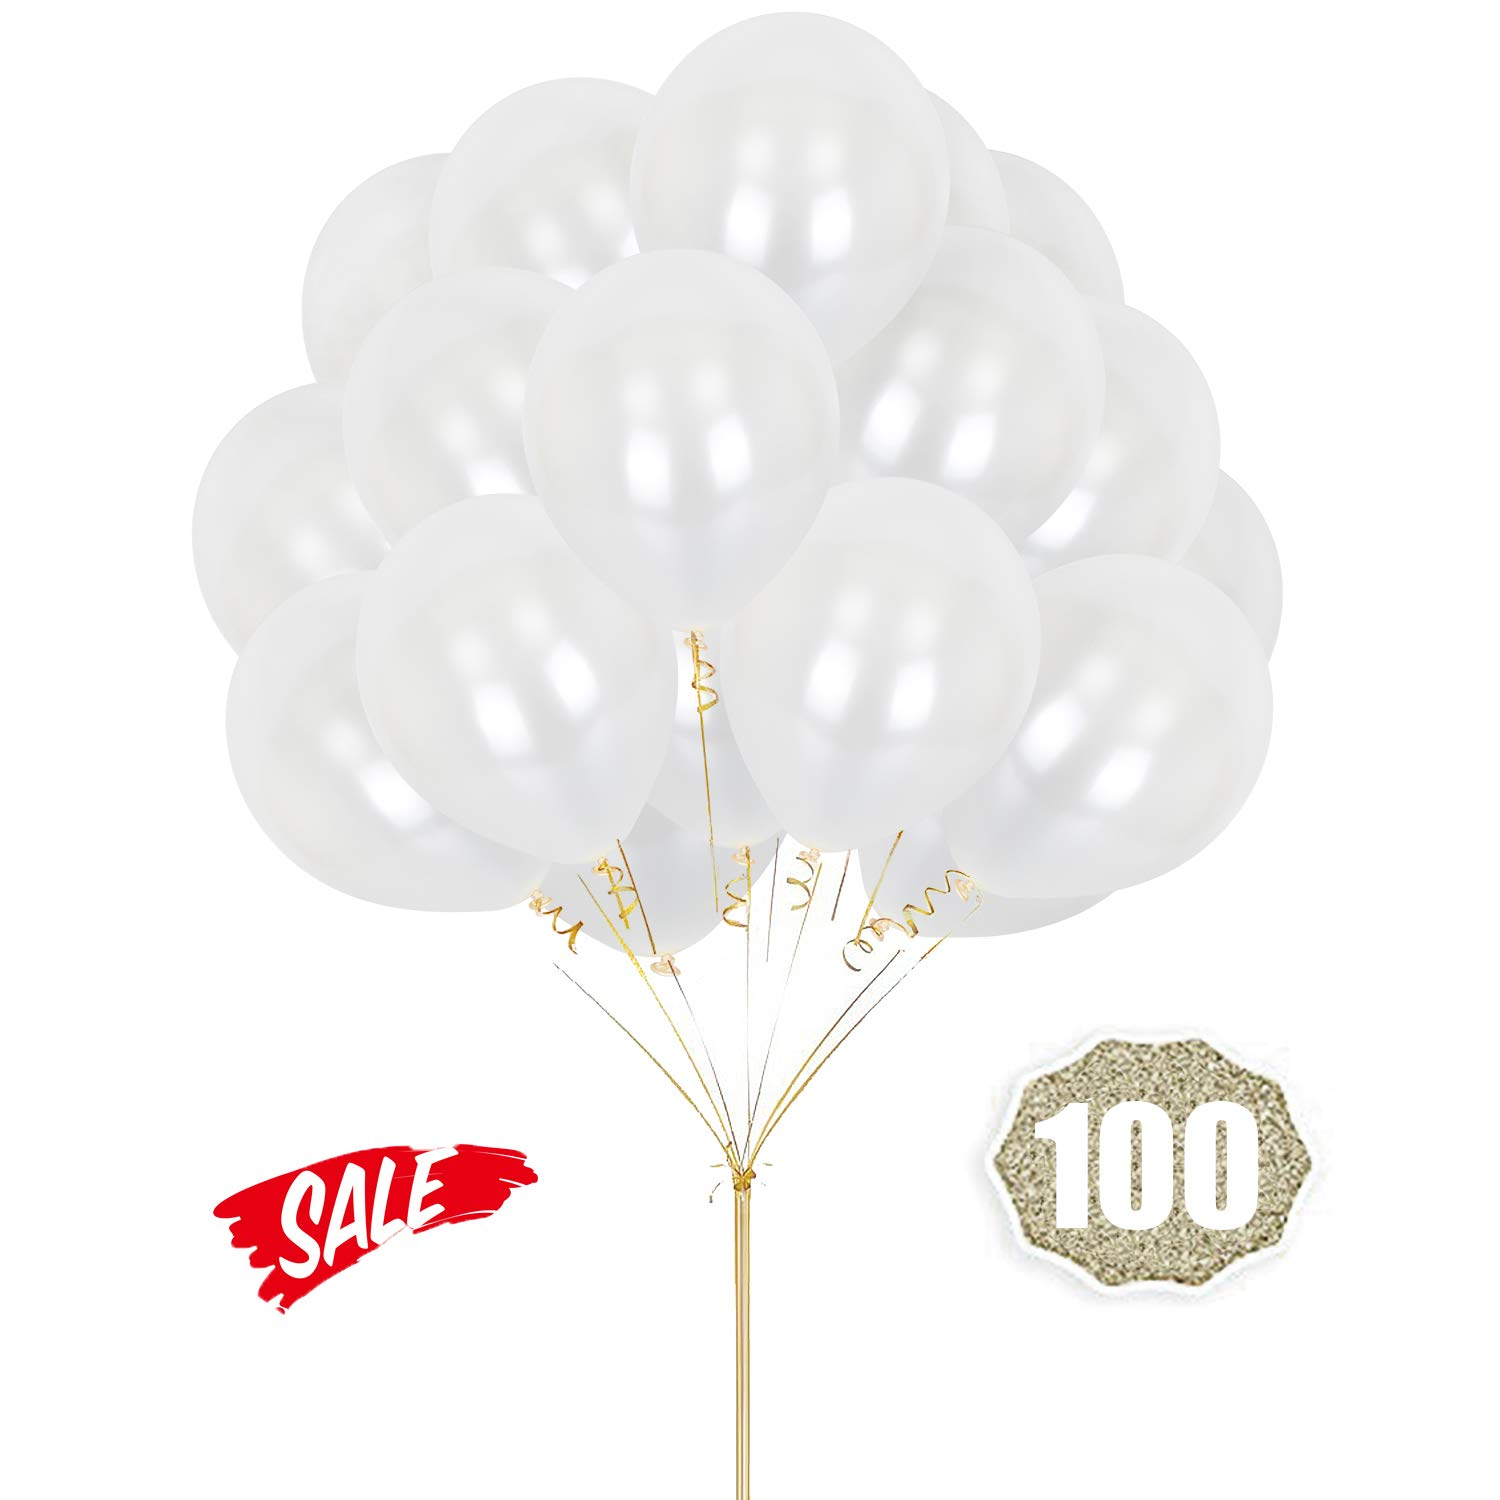 HoveBeaty White Balloons 12 Inches Thicken Latex Metallic Balloons 100 Pack for Wedding Party Baby Shower Christmas Birthday Carnival Party Decoration Supplies